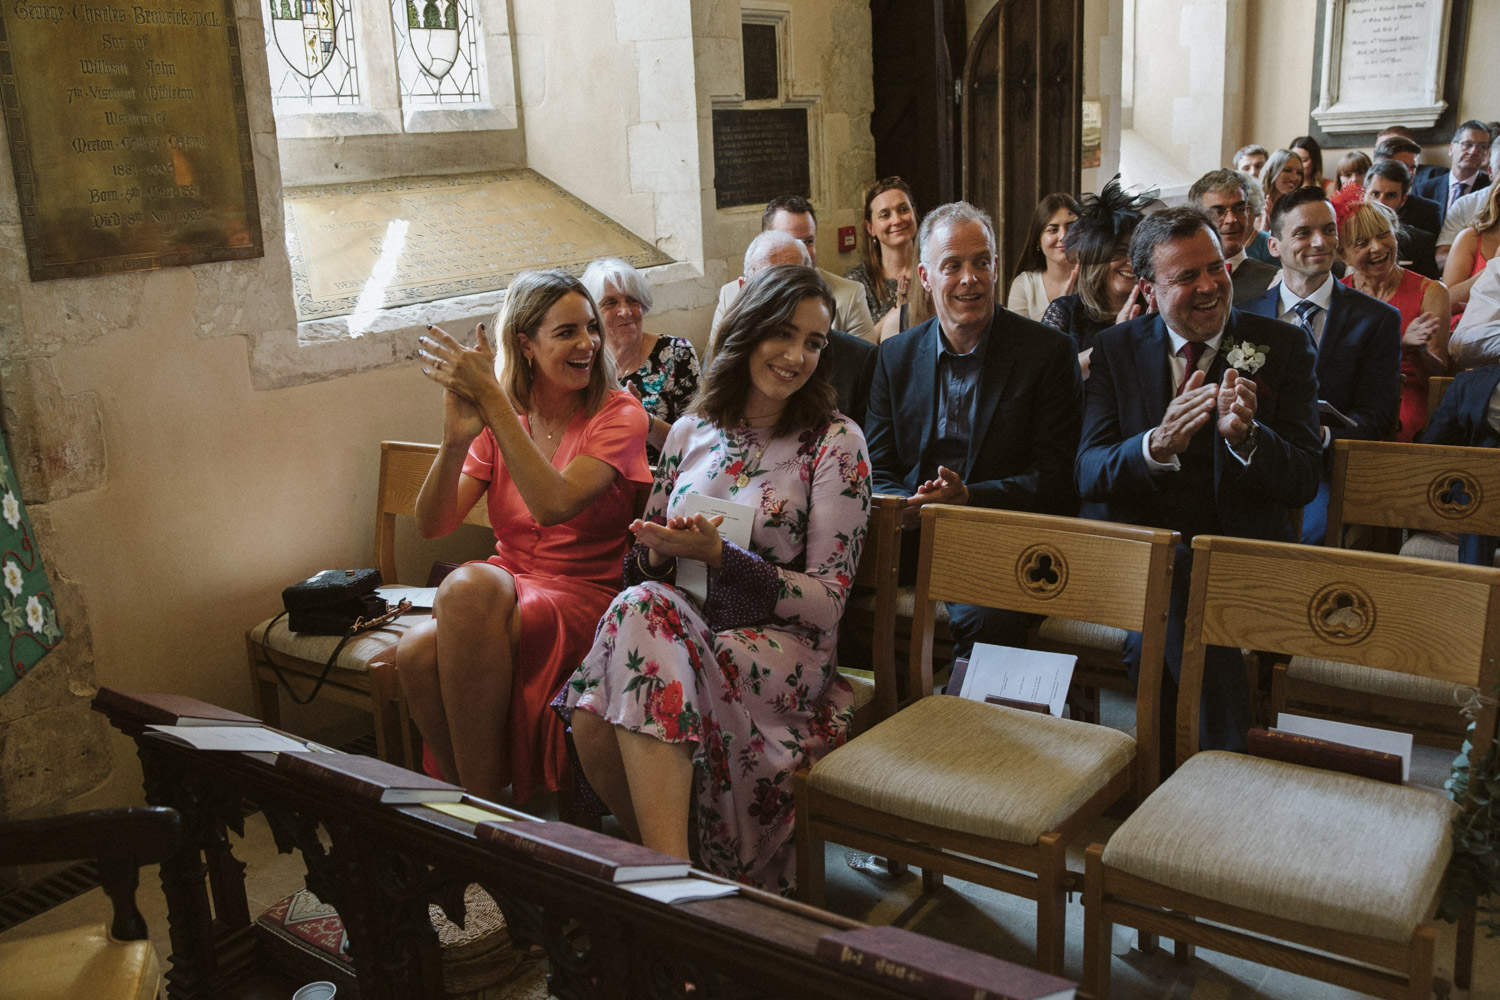 guests applauding the newly weds